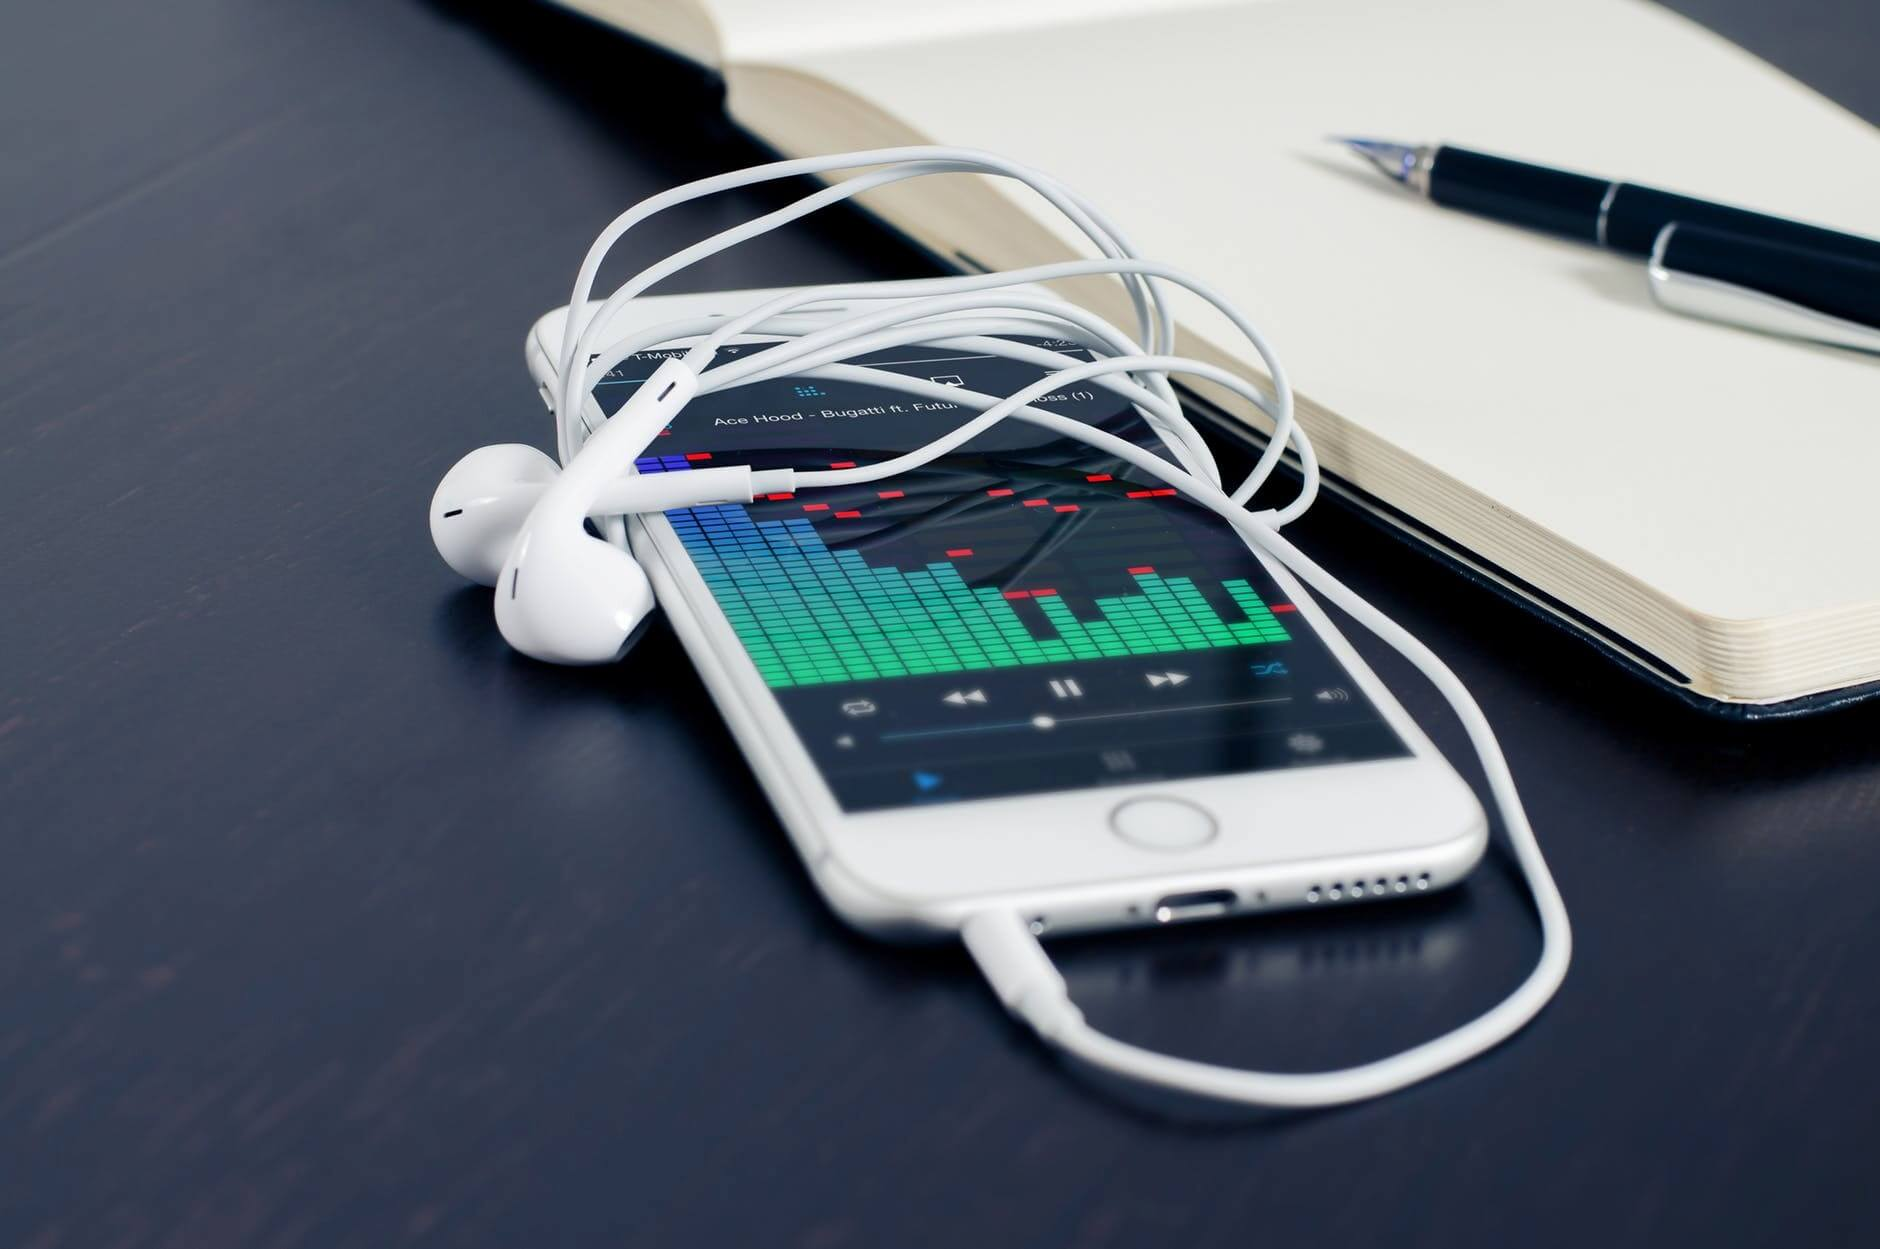 Ease of charging and Listening music